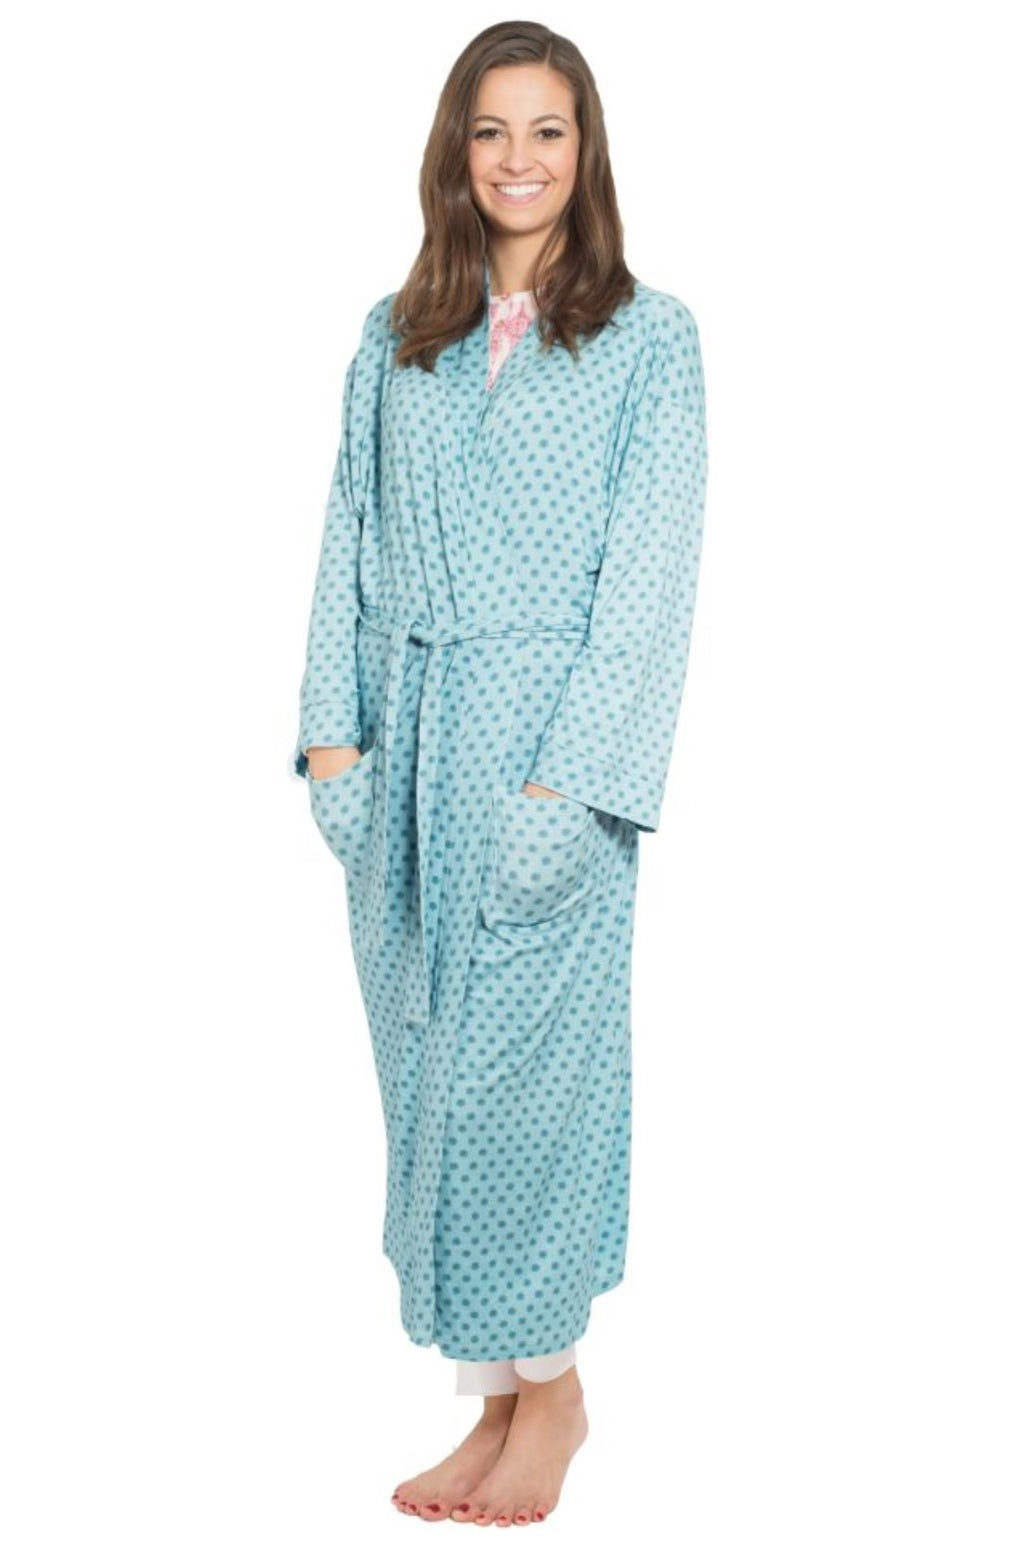 Light Blue Rayon Jersey Kimono Robe with All-Over Floral Medallion Print that Falls Just Above the Ankles